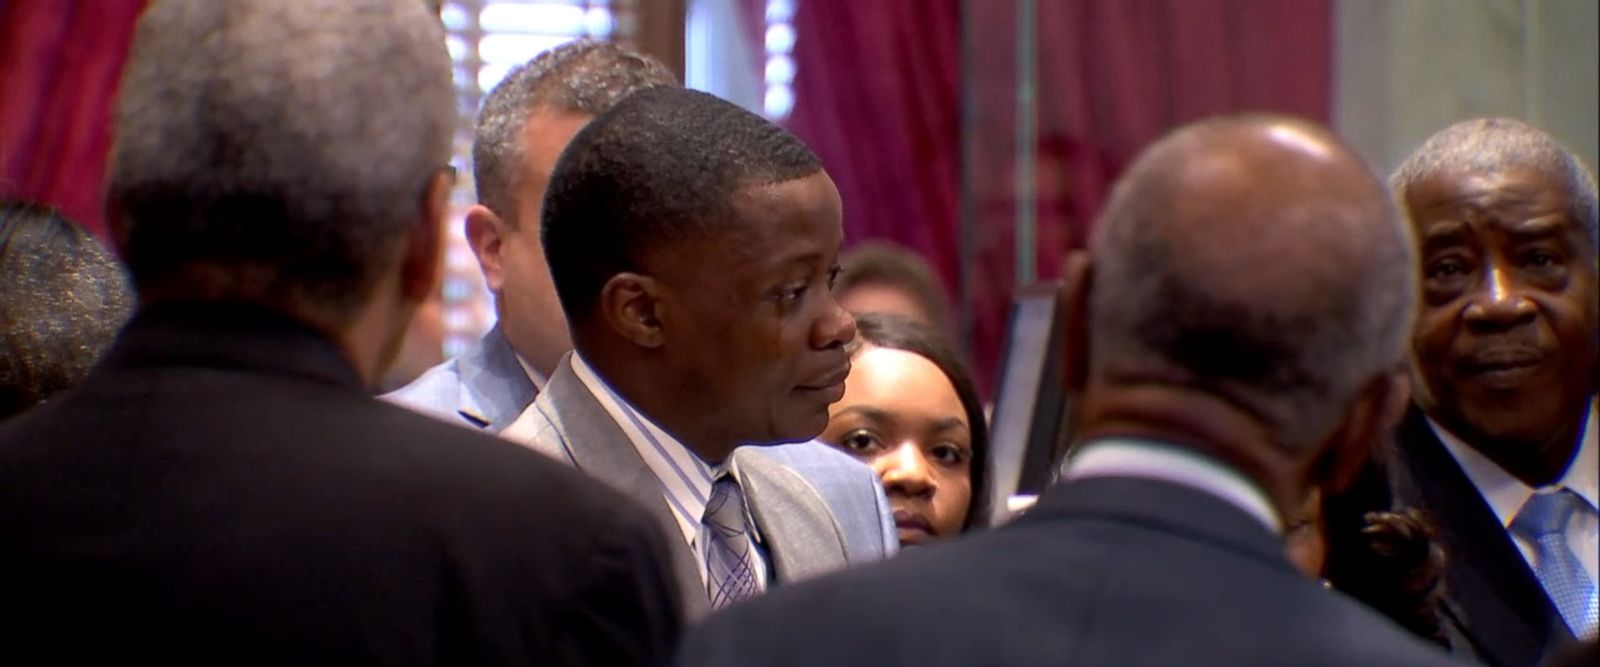 VIDEO: James Shaw Jr., along with friend Brennan McMurry, spoke on the floor of the Tennessee state legislature.